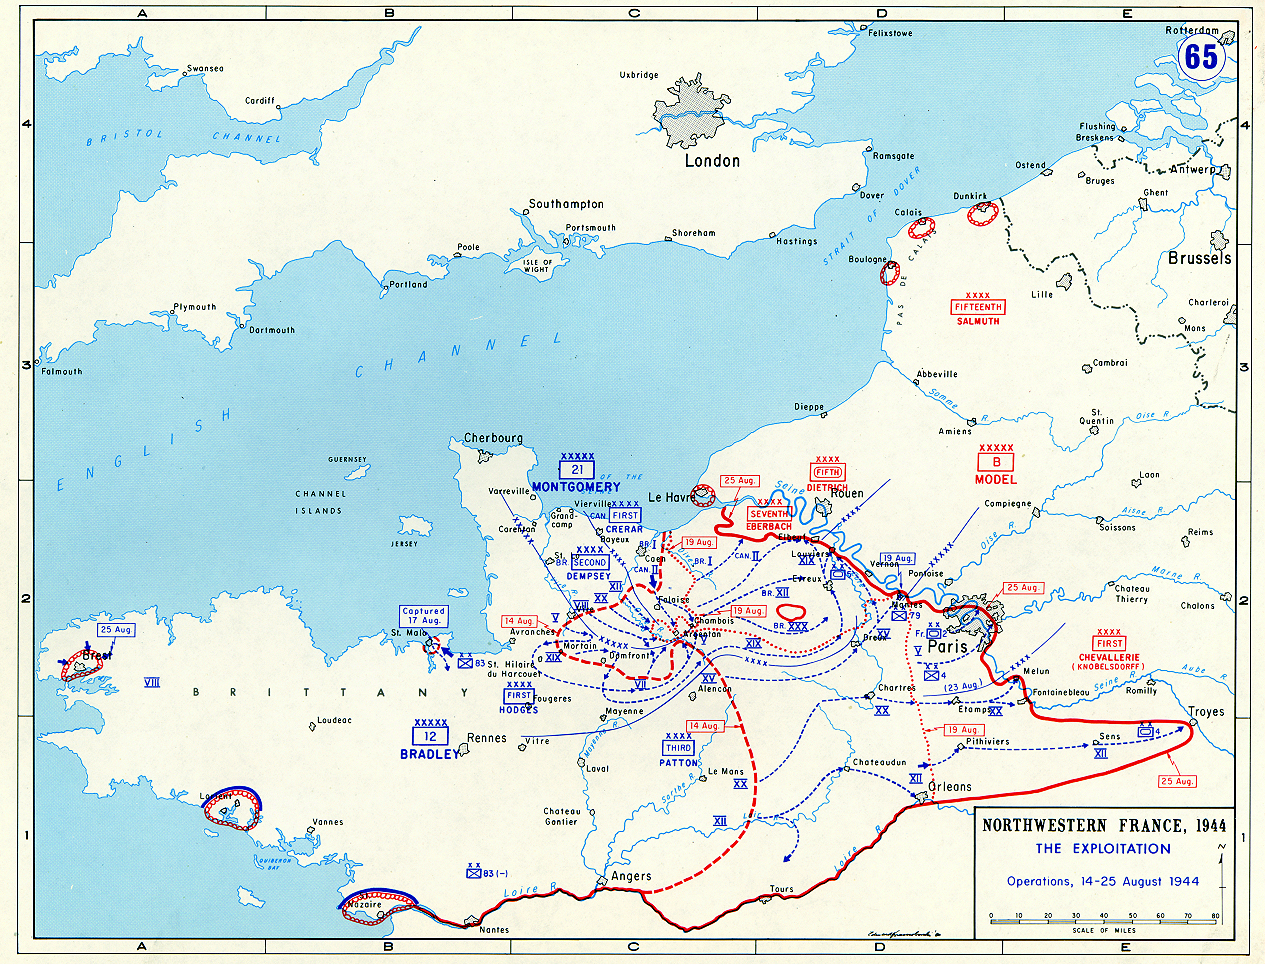 The exploitation of allied positions in northwestern france